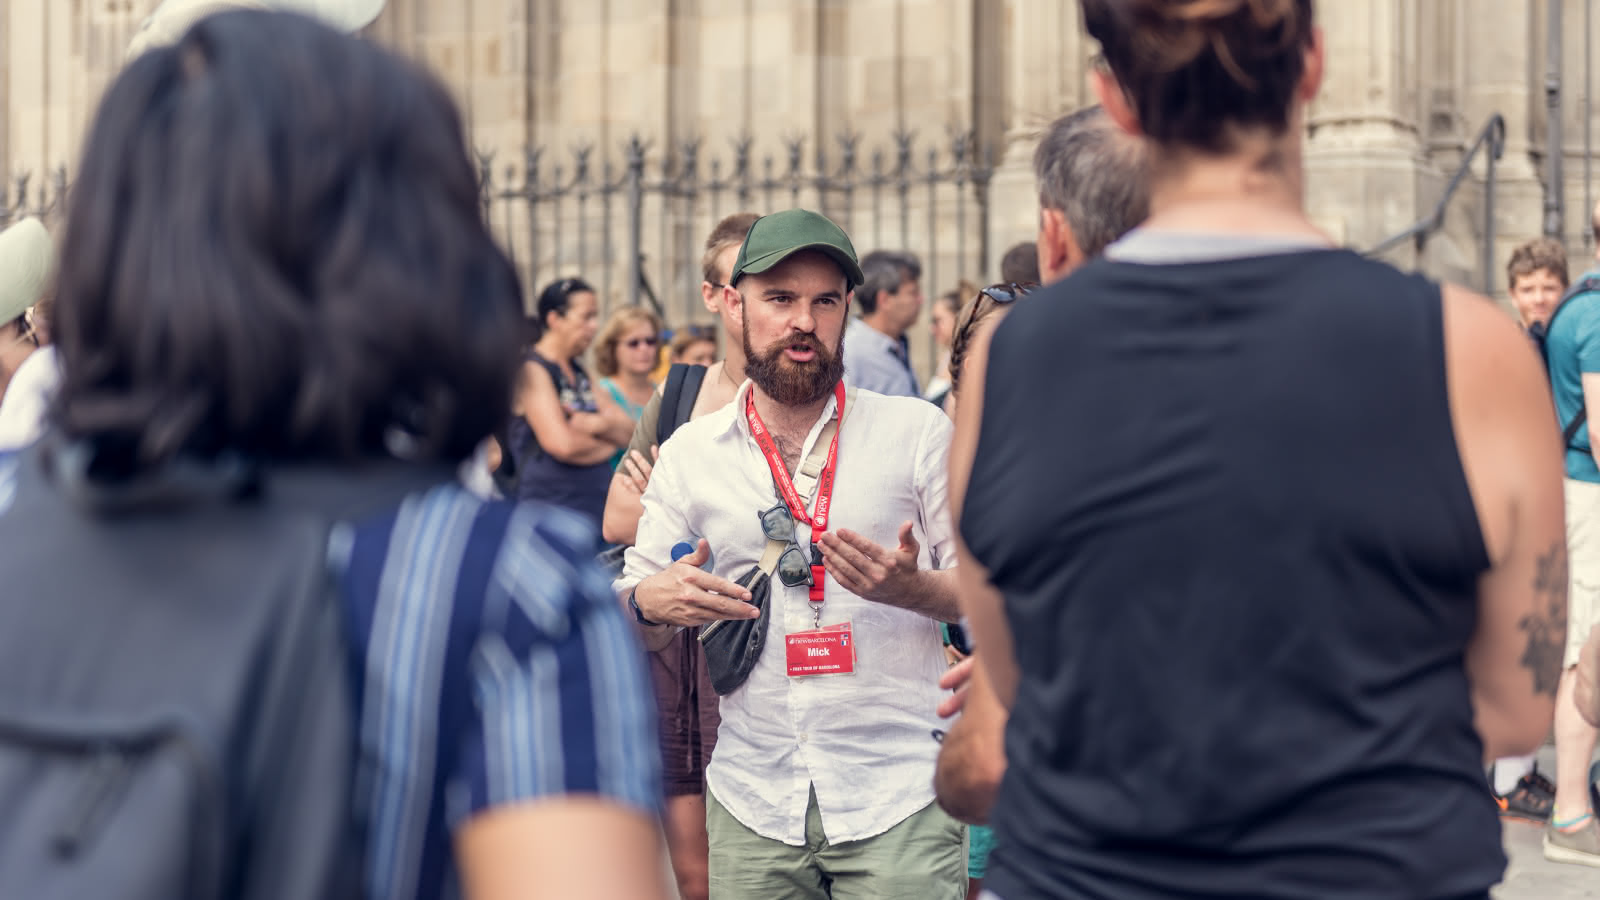 free tour guide showing barcelona's gothic quarter to the guests